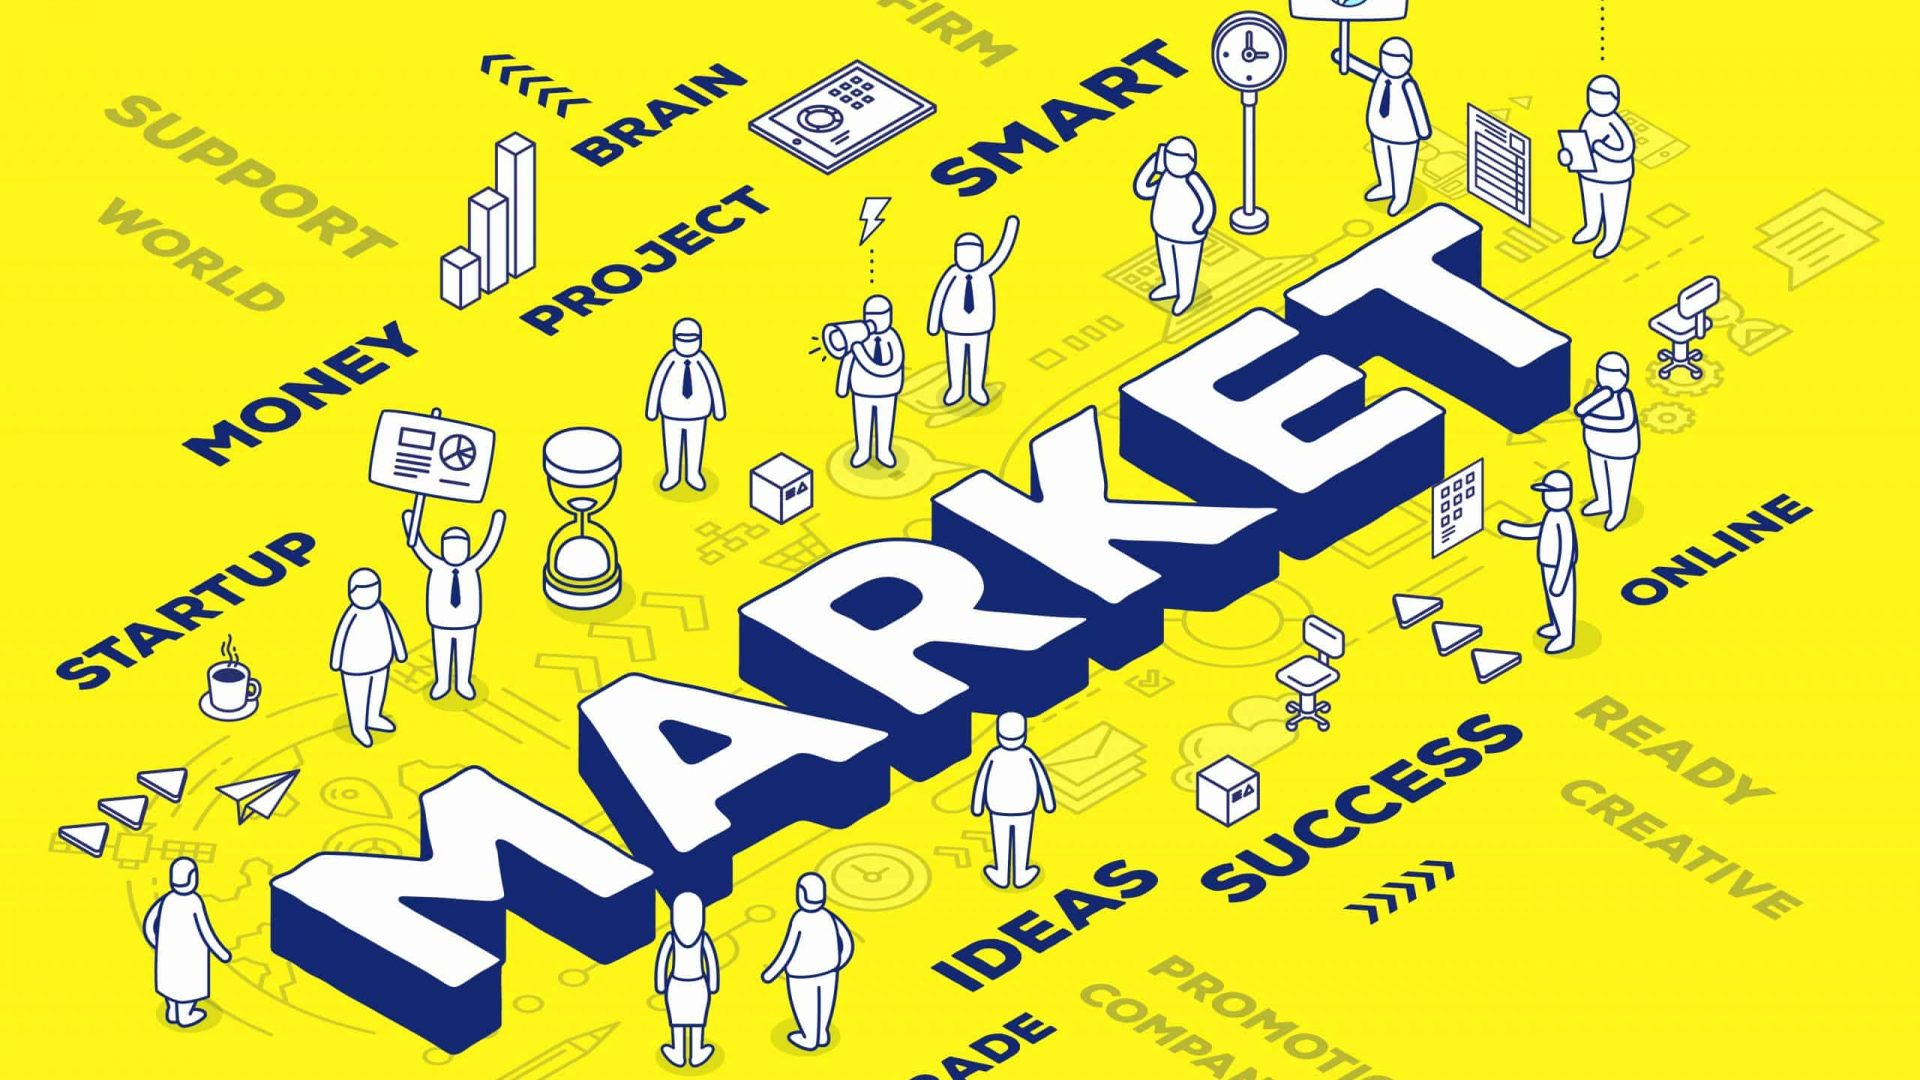 Vector illustration of three dimensional word market with people and tags on yellow background with scheme. Market technology concept. 3d thin line art style design for web, site, banner